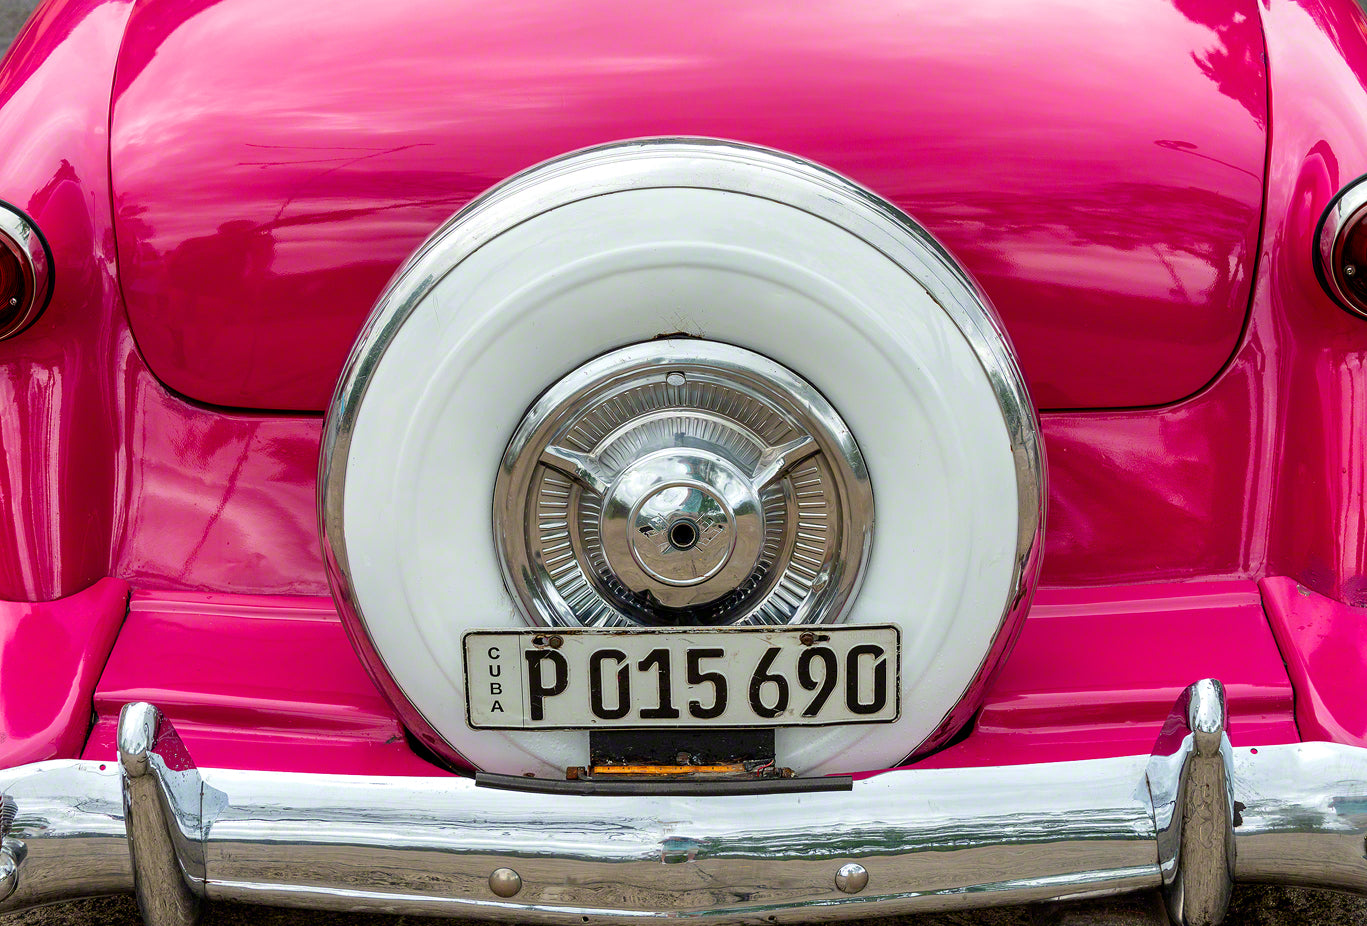 A pink classic American car used as a taxi in Havana Cuba